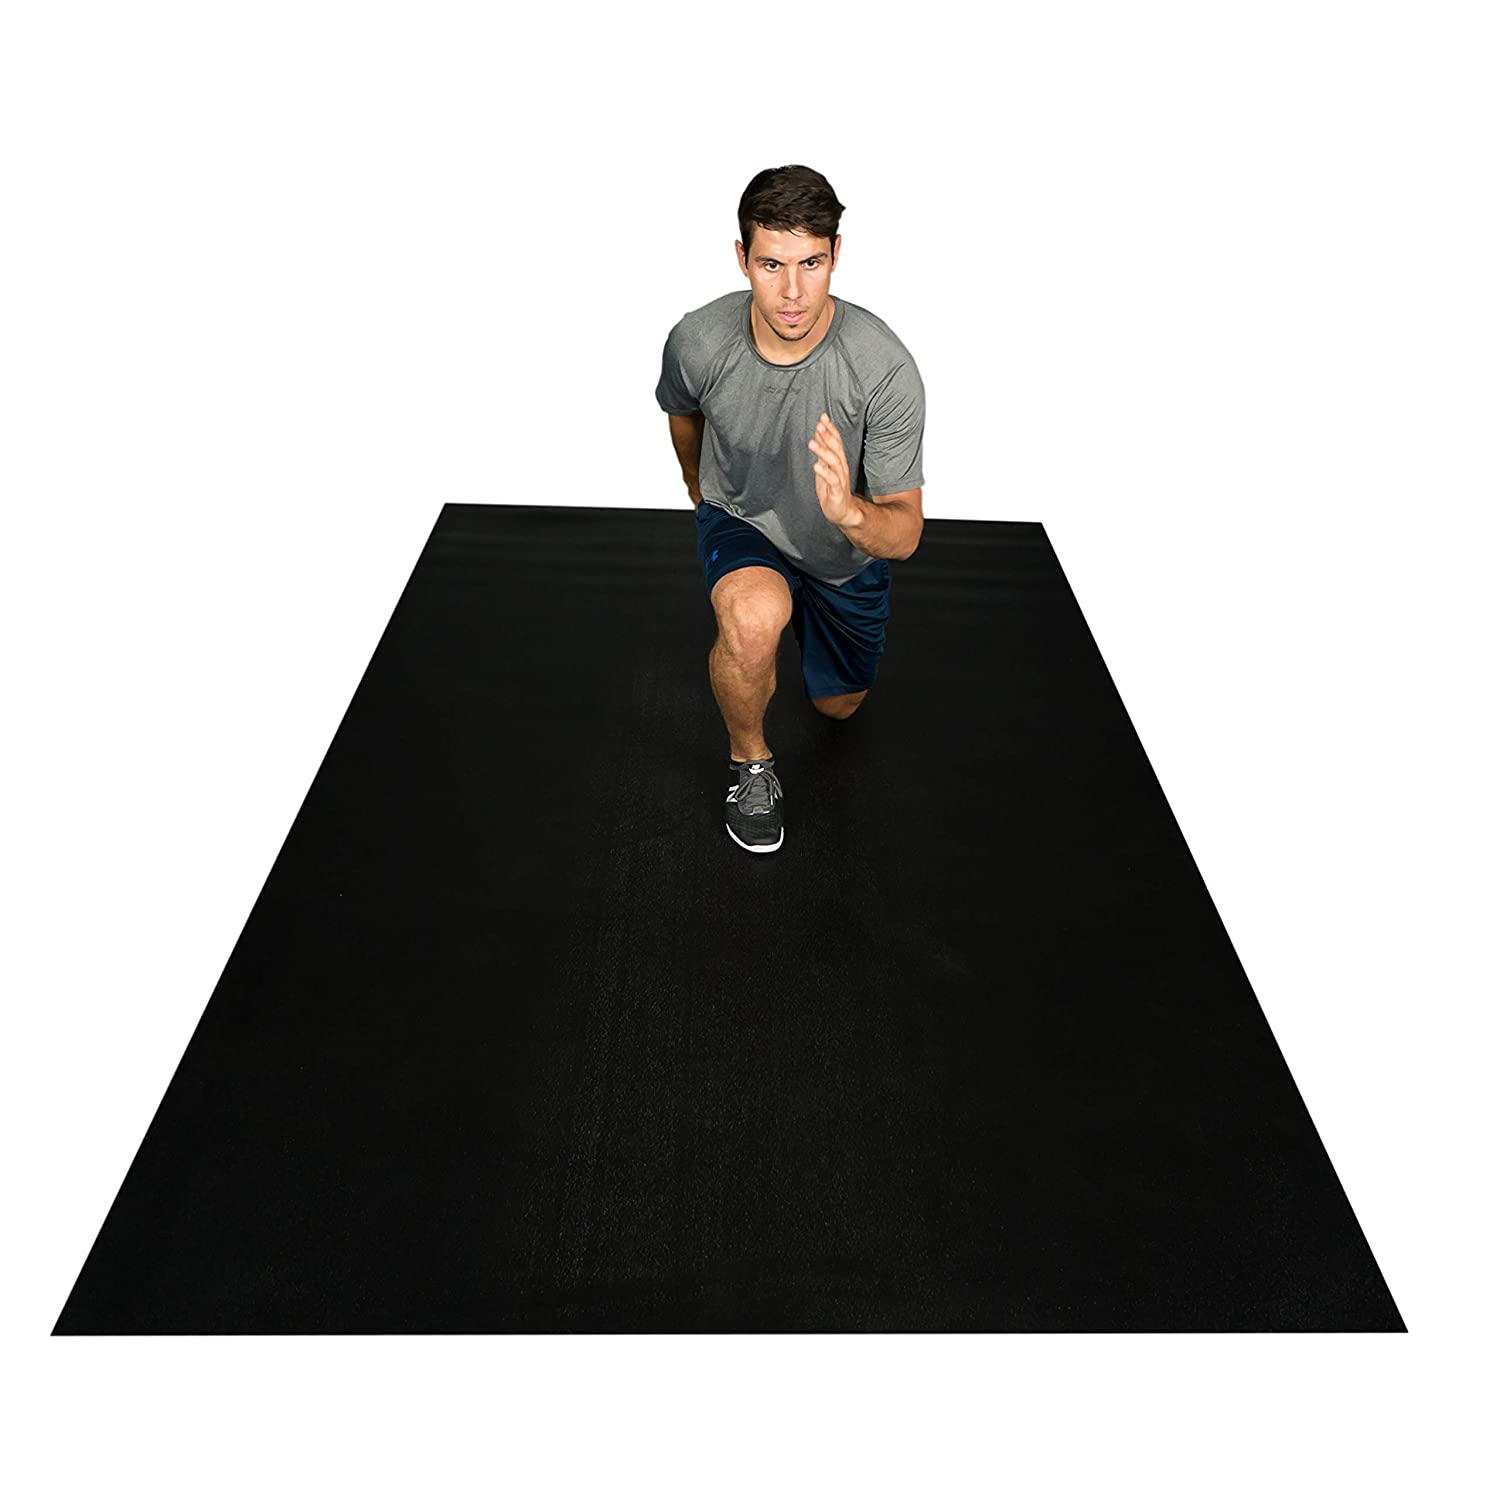 """Square36 Extra Large Exercise Mat. Made in Germany (Oeko-Tex Certified & Tested). 10' X 6' x 1/4"""". Large Home Gym Exercise Mat That Protects Floors. Perfect for Beachbody, TAM, HIIT, PLYO, Zumba."""